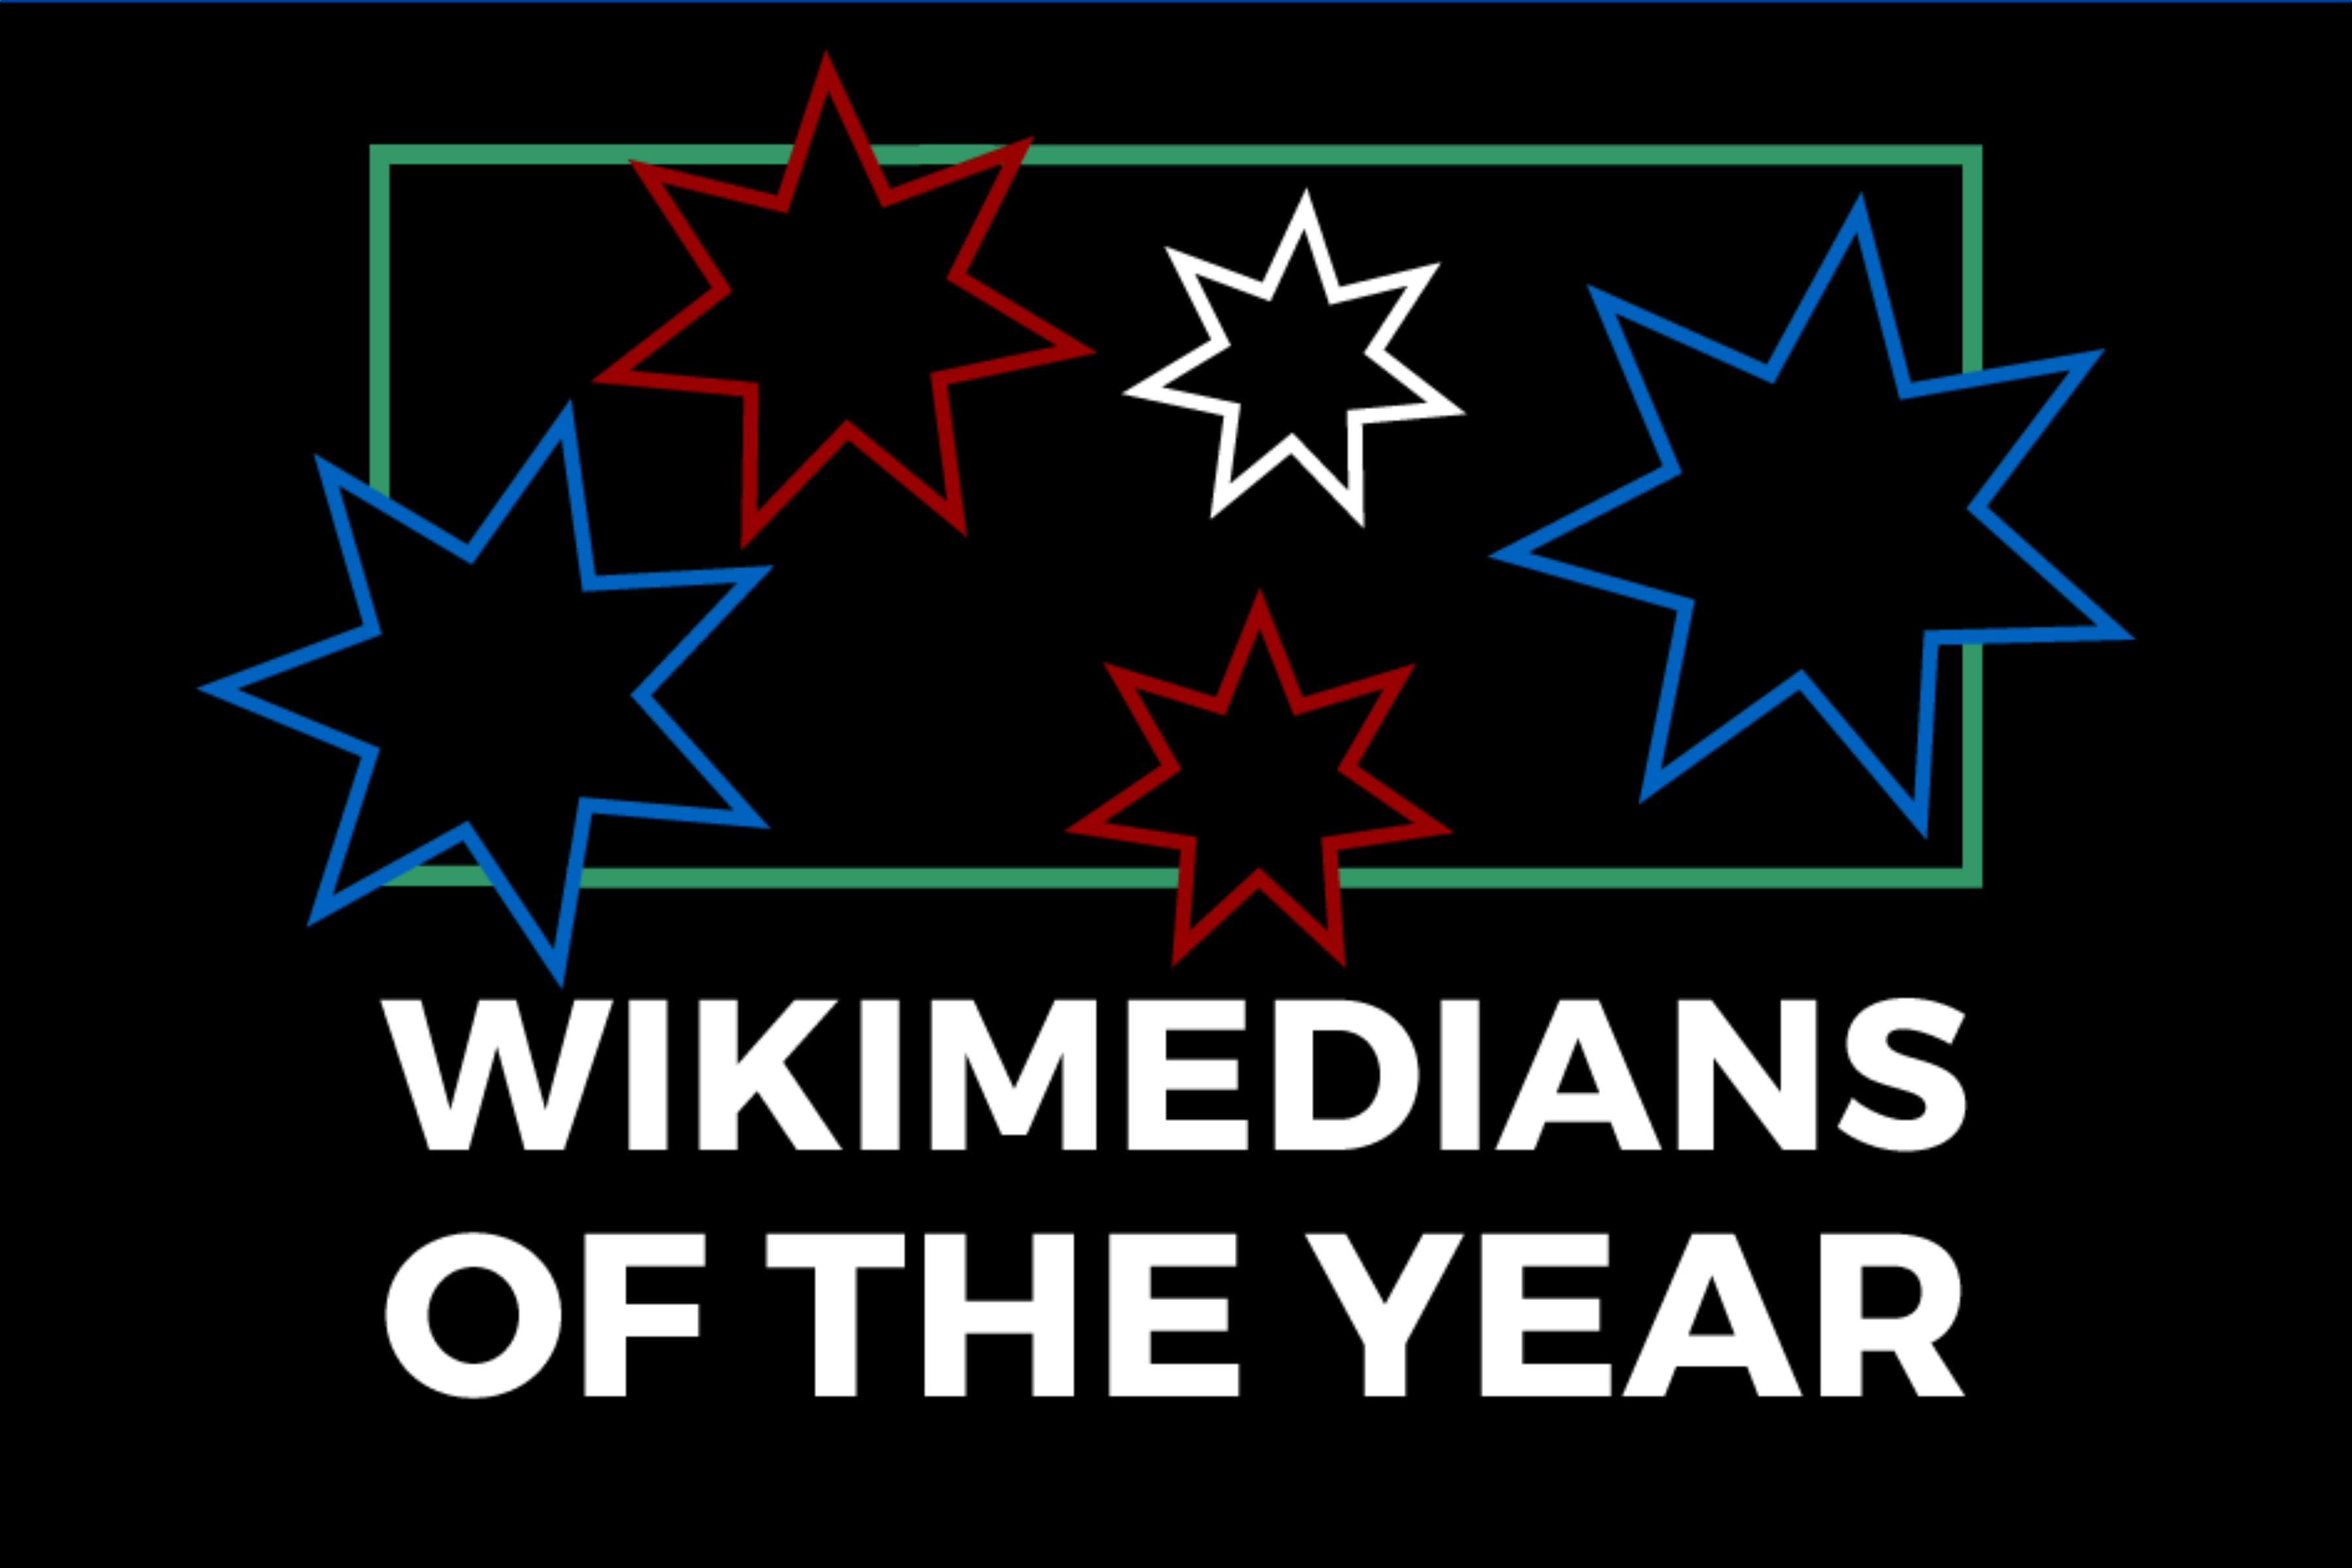 Seven exceptional Wikimedia community volunteers were recognized today at the 2021 Wikimania, the Wikimedia movement's annual conference celebrating